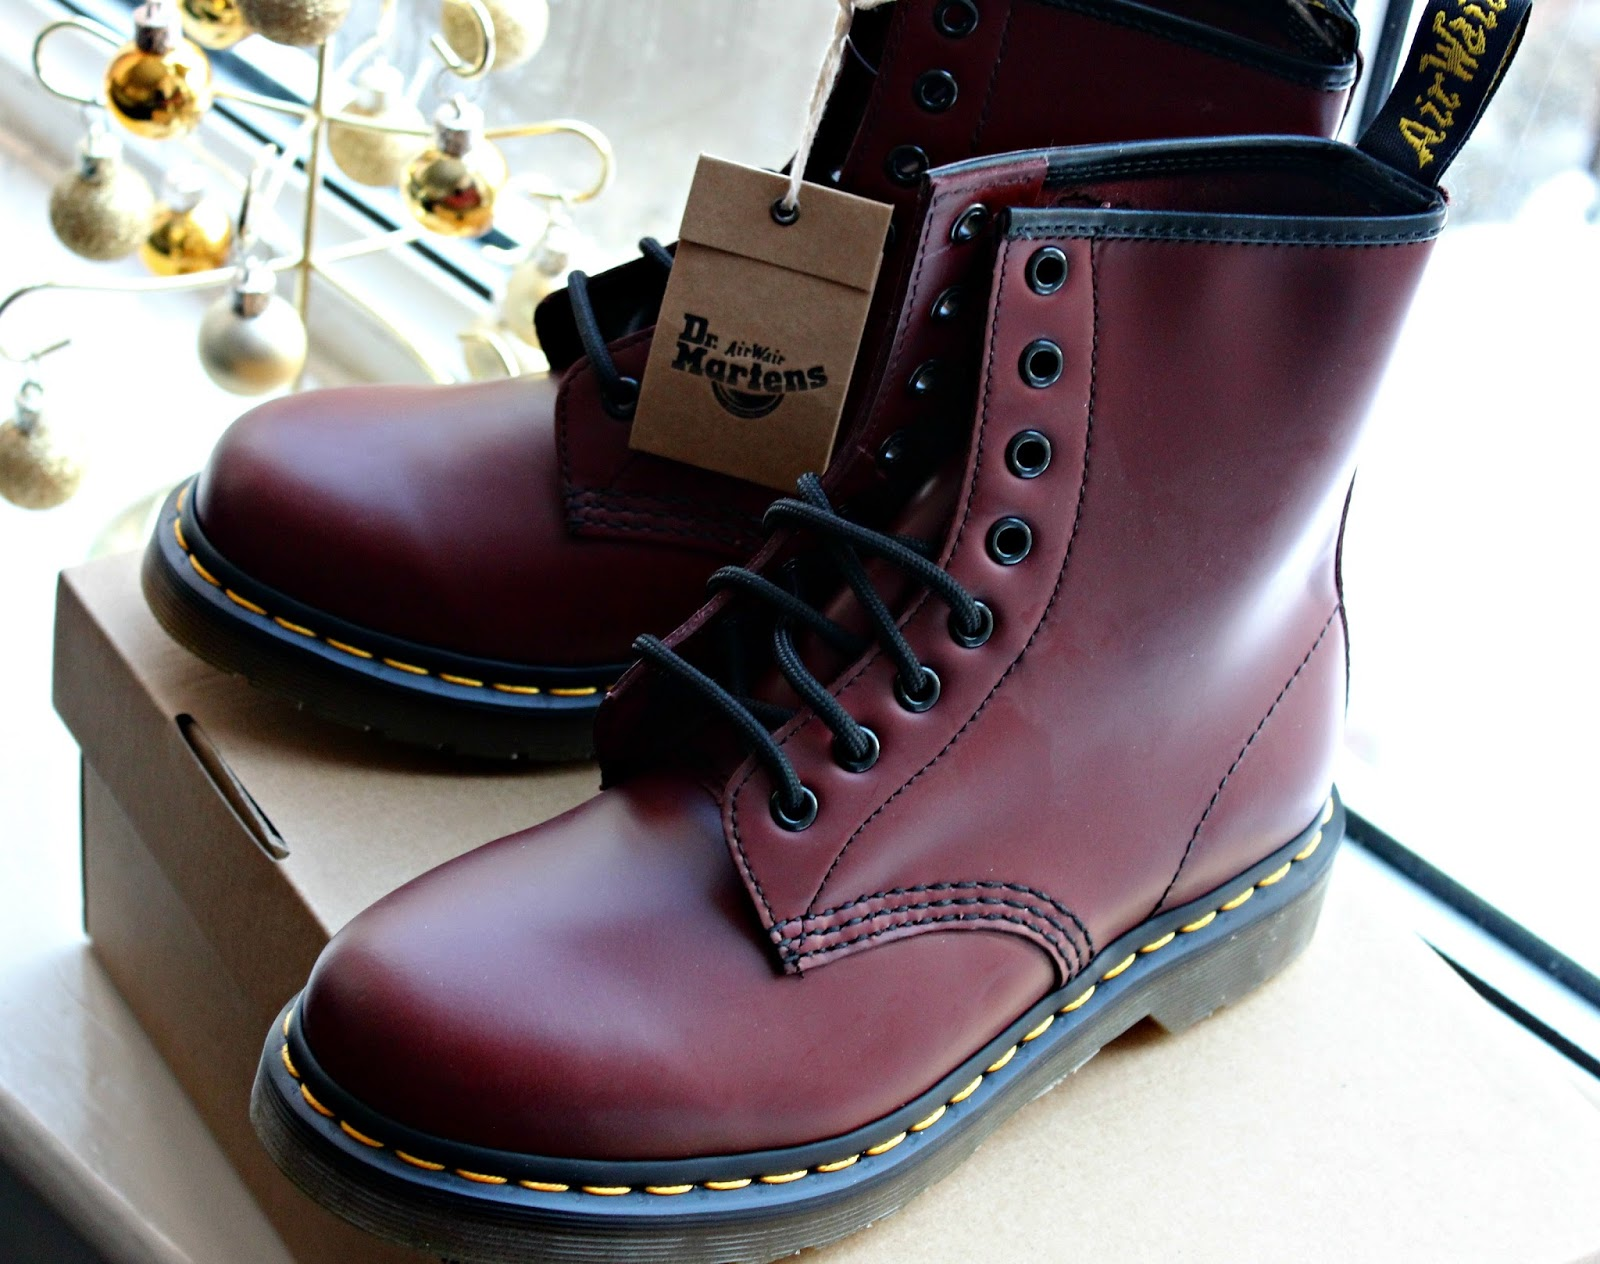 A picture of the Dr Martens